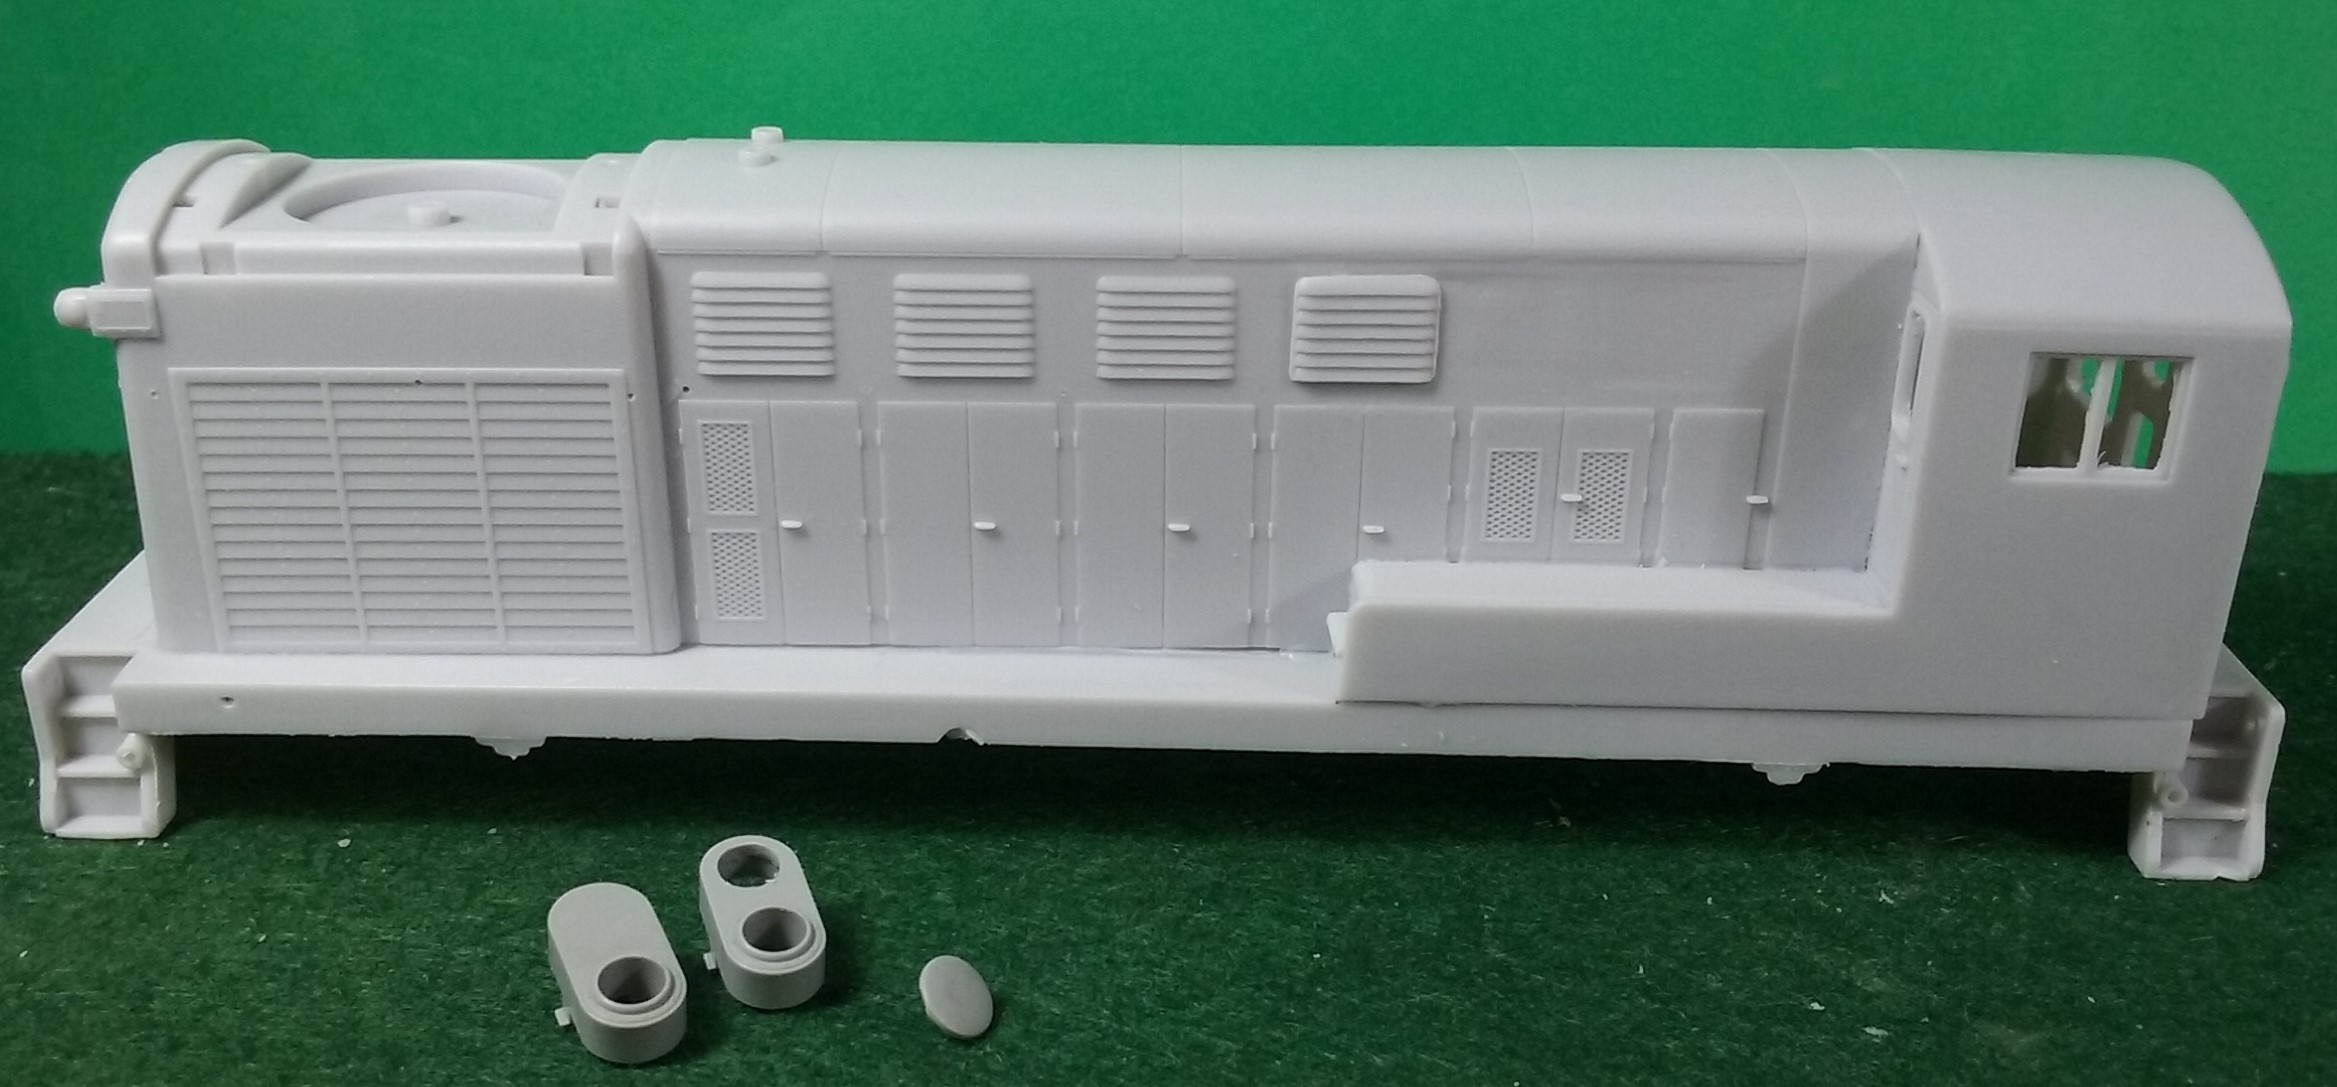 HO Scale Fairbanks Morse H-20-44 Locomotive Shell | CMR Products